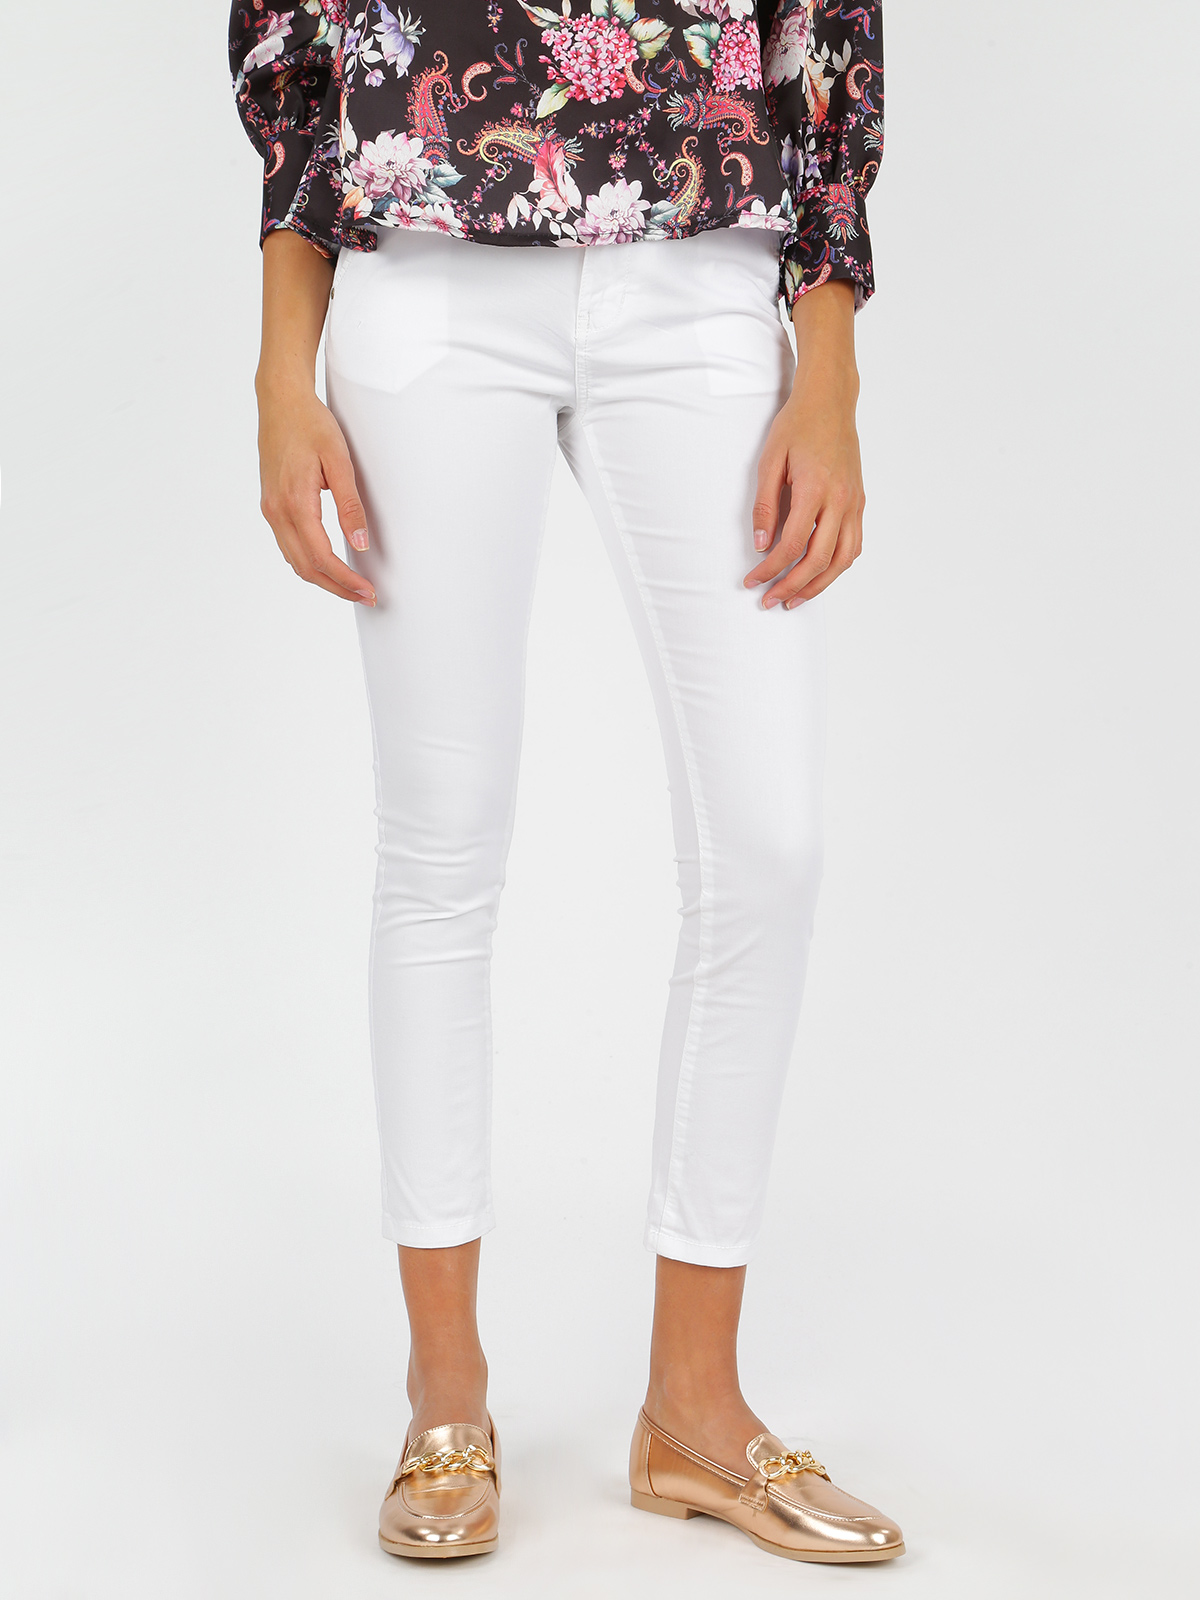 White Trousers Low Waist